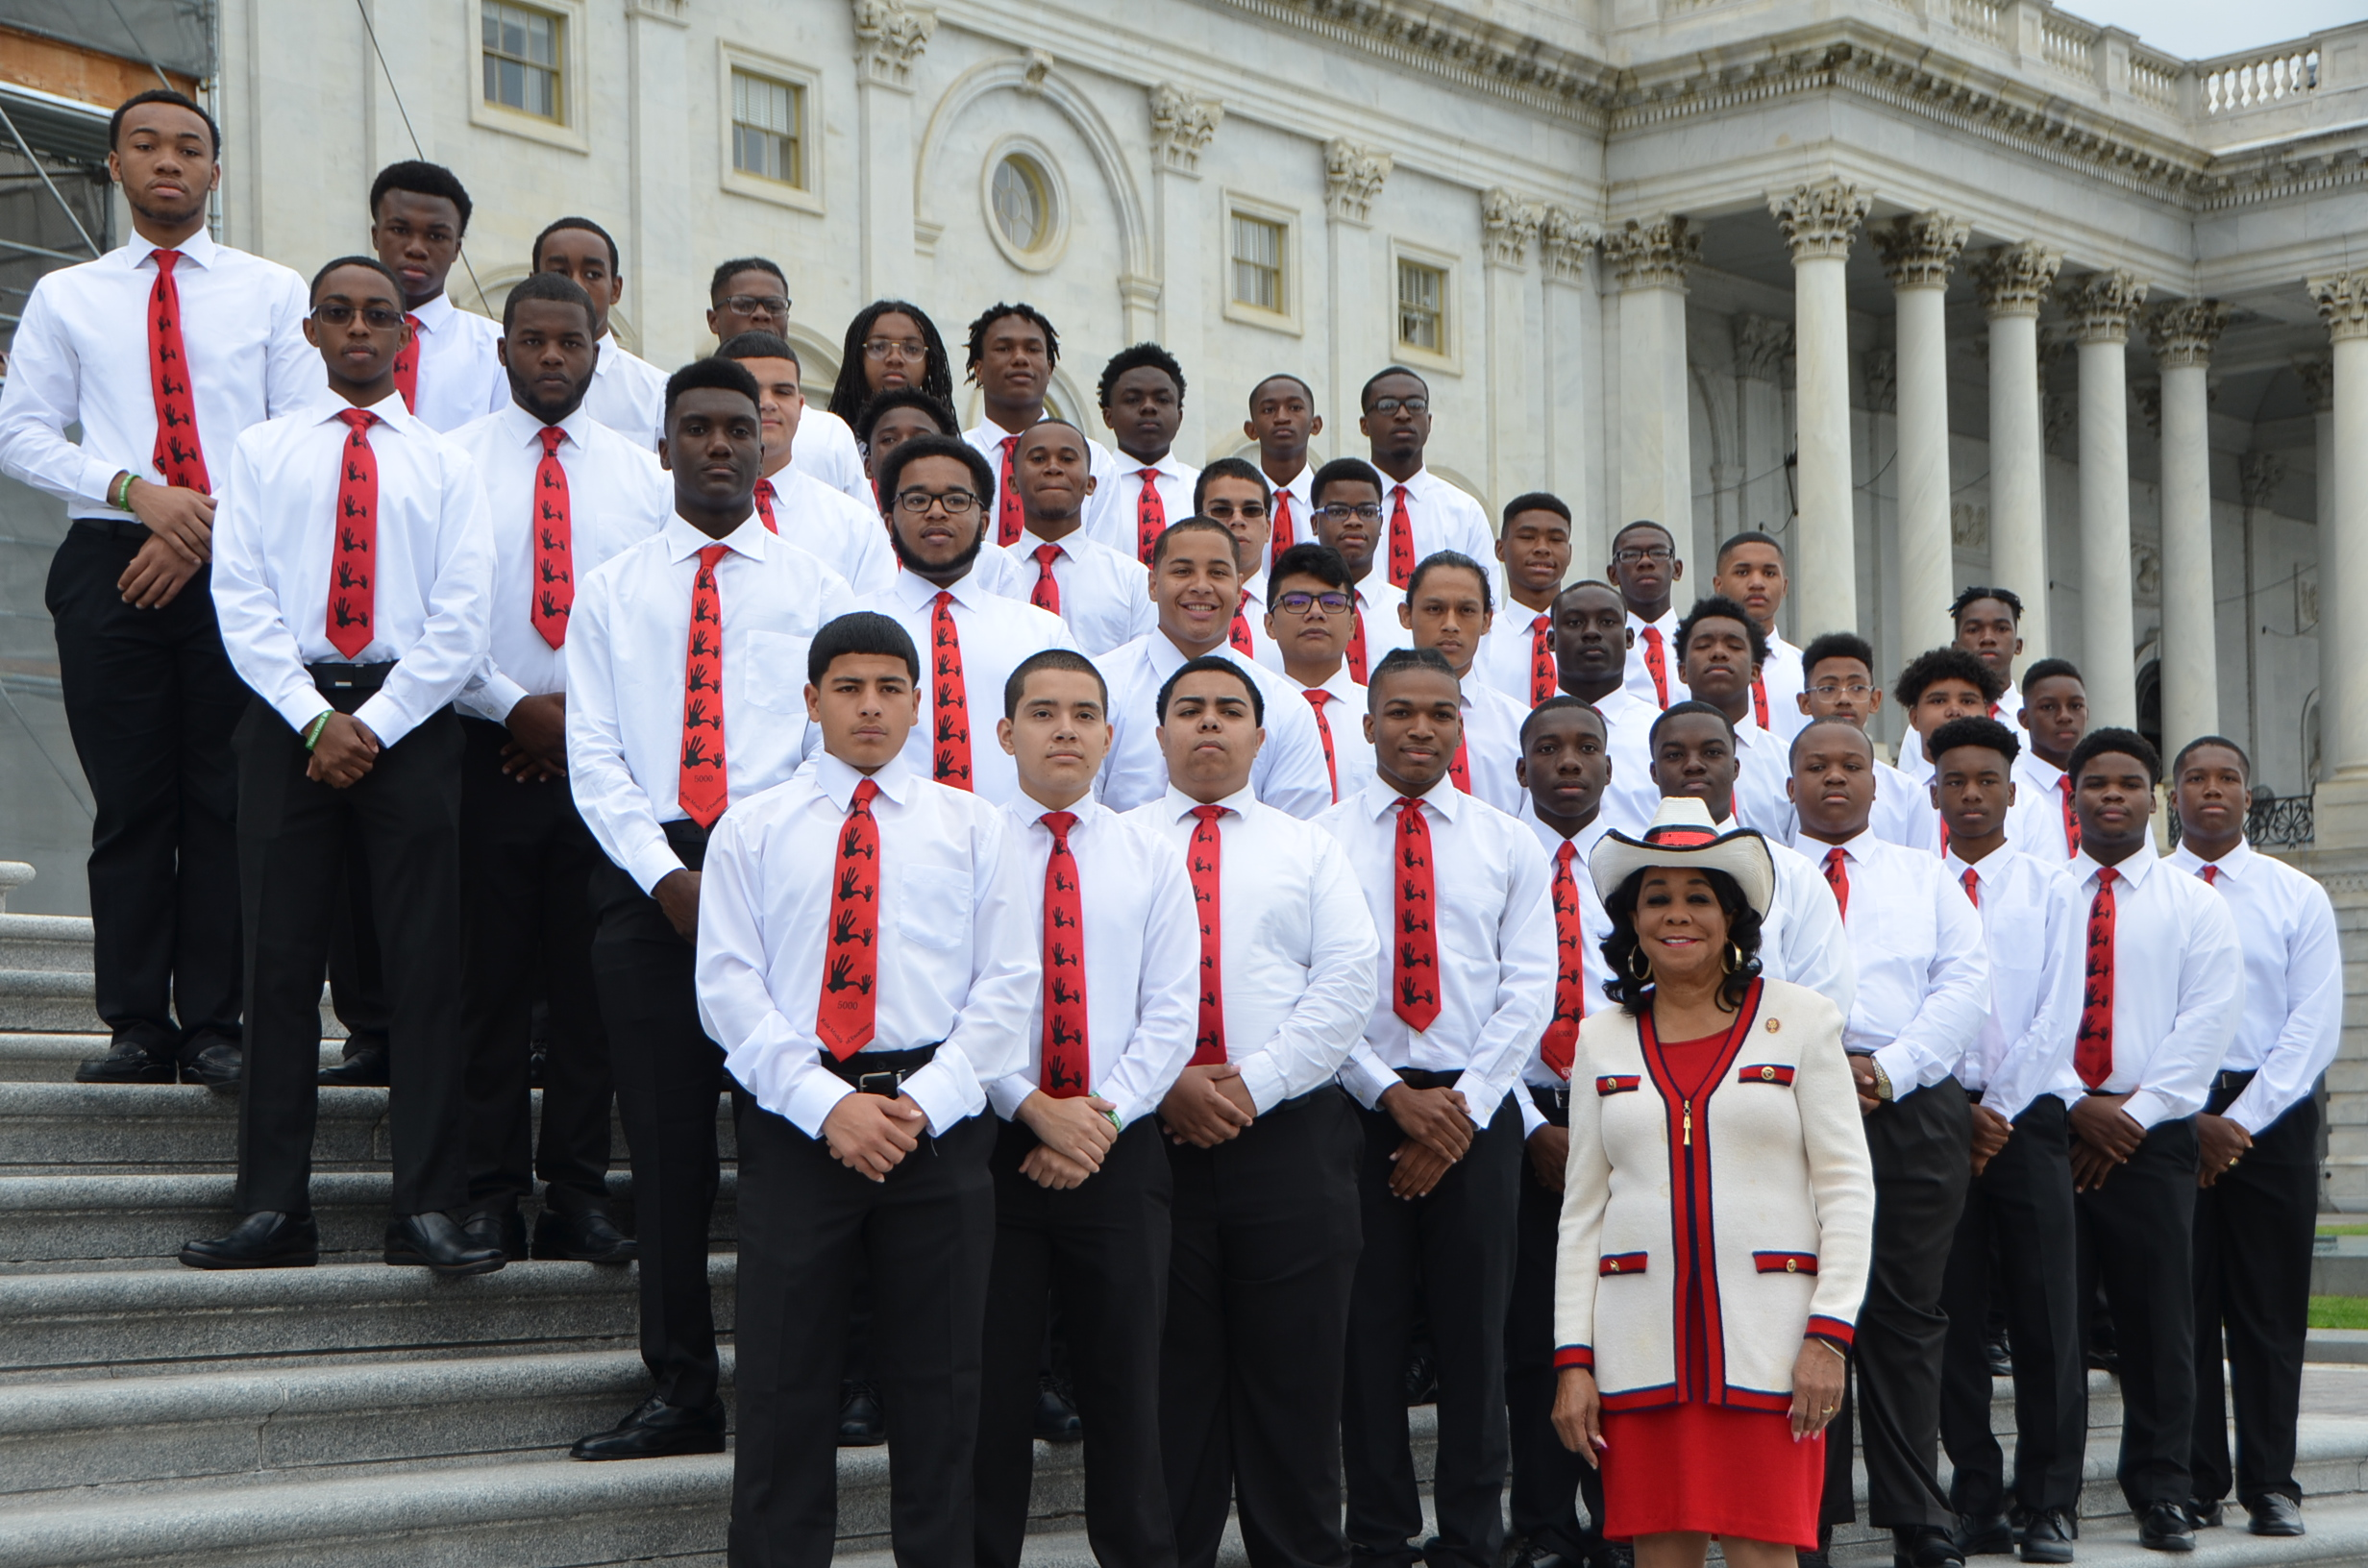 SPOTLIGHT ON COMMUNITY PARTNER - Congresswoman Frederica Wilson and the 5000 Role Models of Excellence